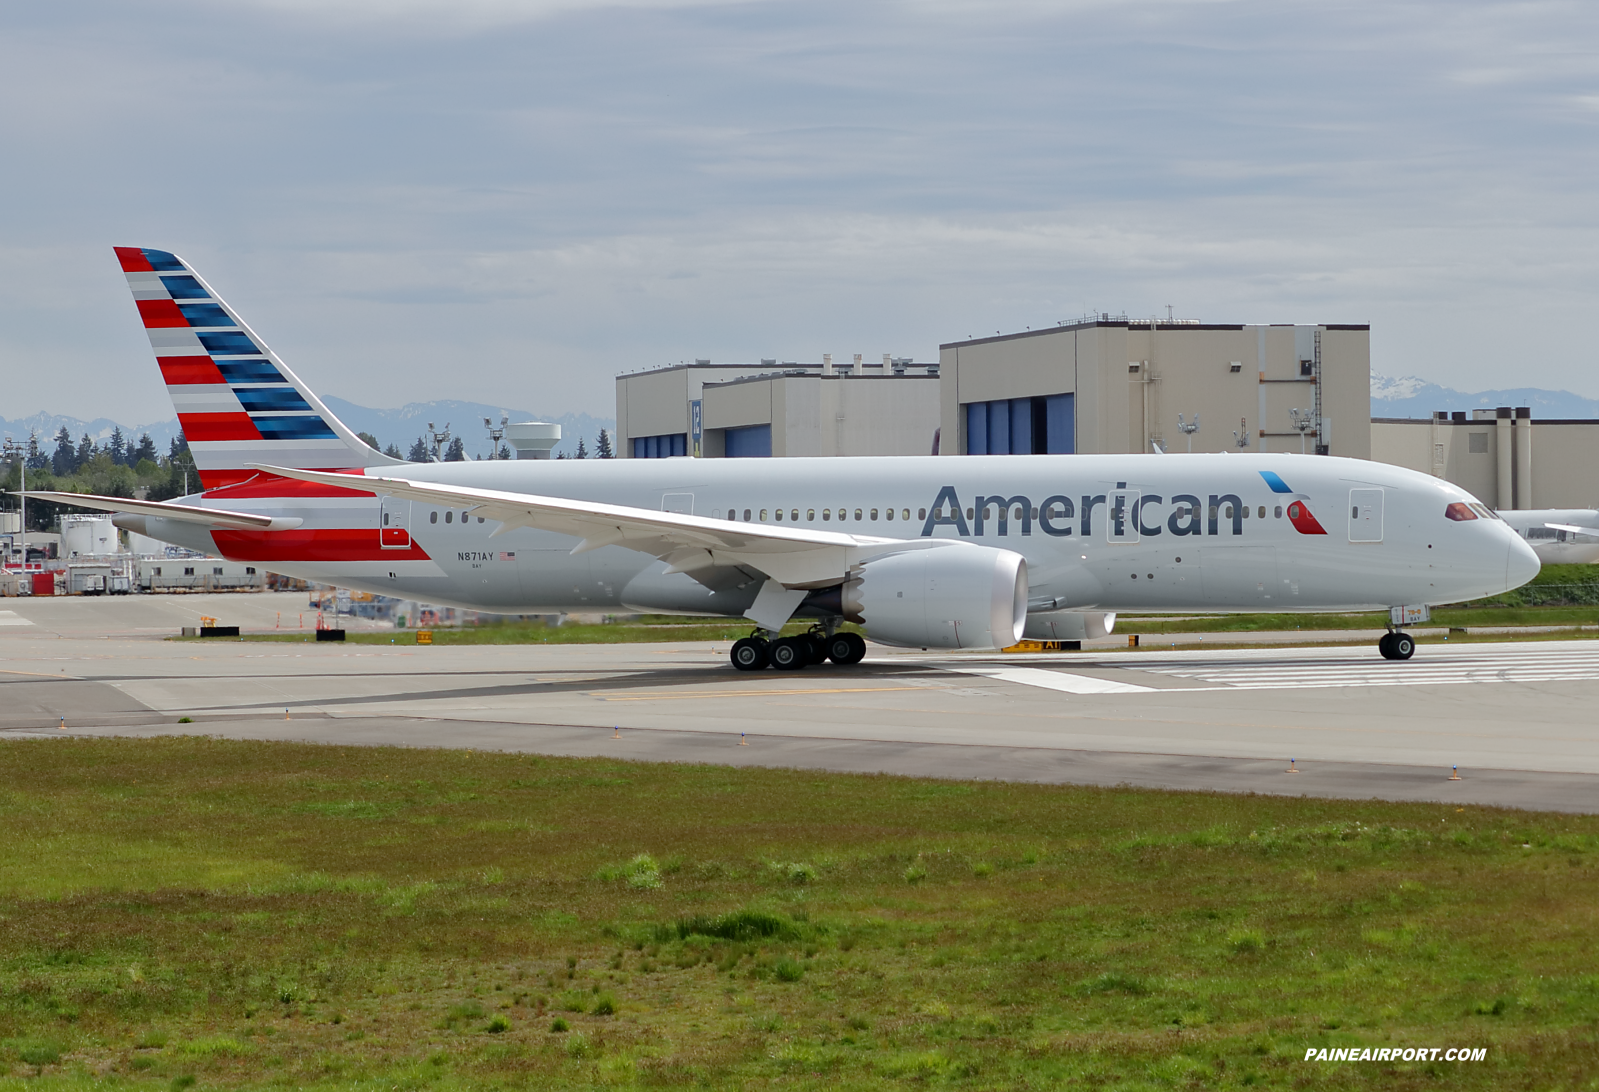 American Airlines 787-8 N871AY at Paine Field